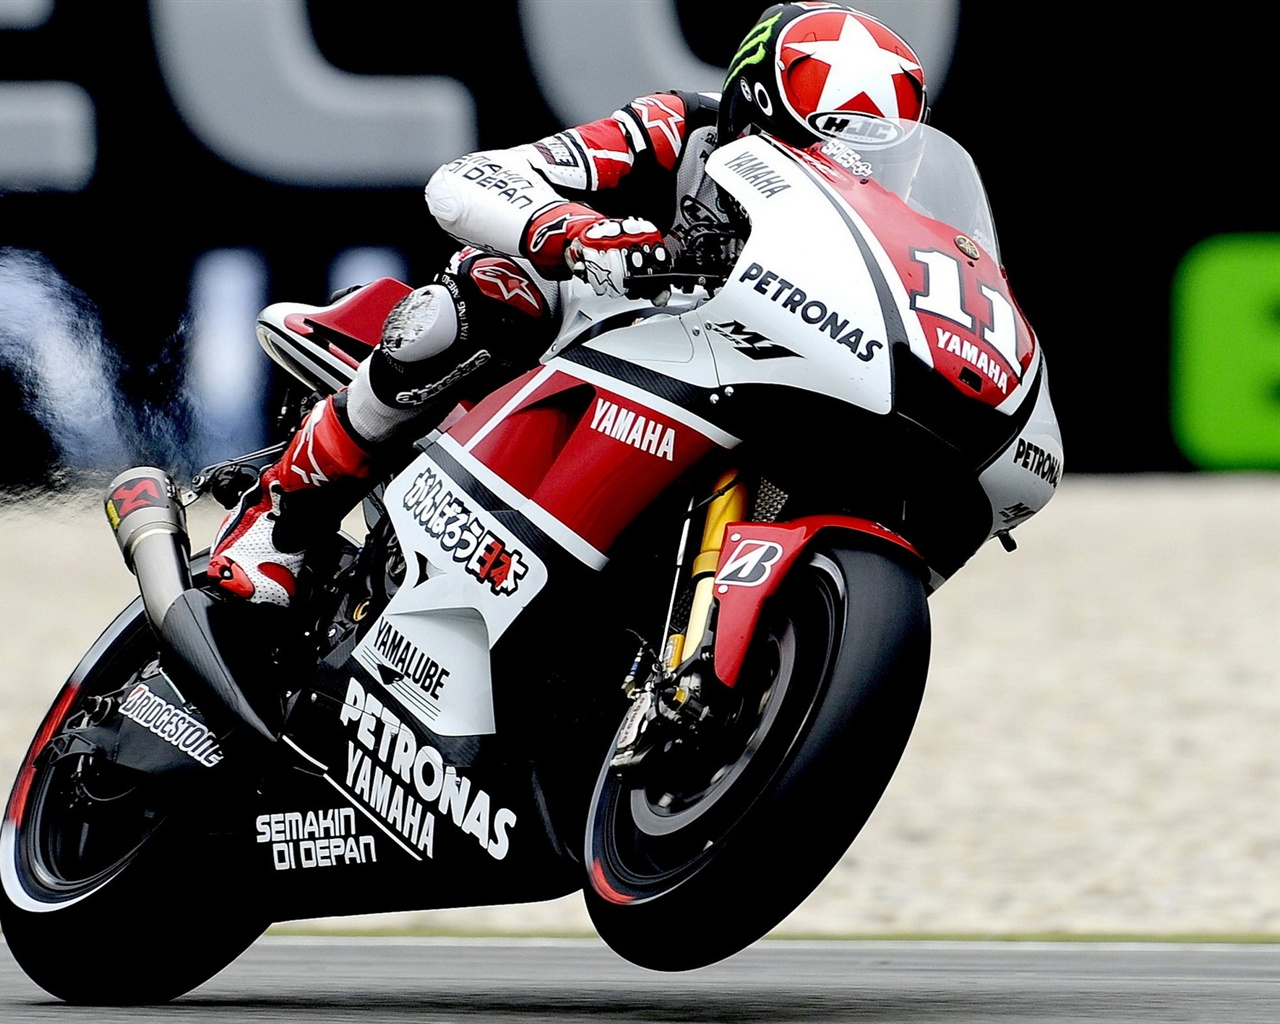 Wallpaper Yamaha Motorcycle Racing 1920x1200 Hd Picture Image